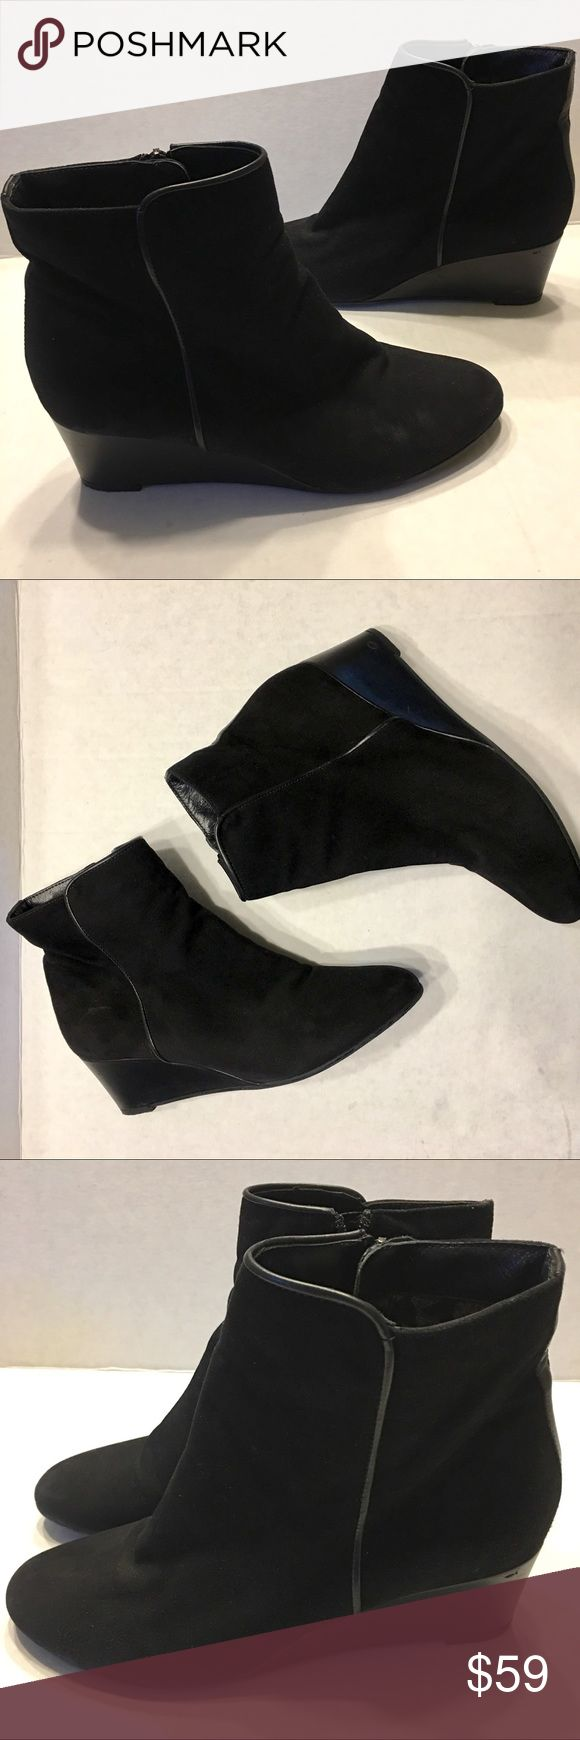 AQUATALIA Black Suede Wedge Bootie Leather 9.5 Aquatalia Black Suede Wedge Boots sz 9.5.  Side Zip.  Almond toe front.  Leather upper. Leather Seam edges. Sku#10001705120 Aquatalia Shoes Ankle Boots & Booties